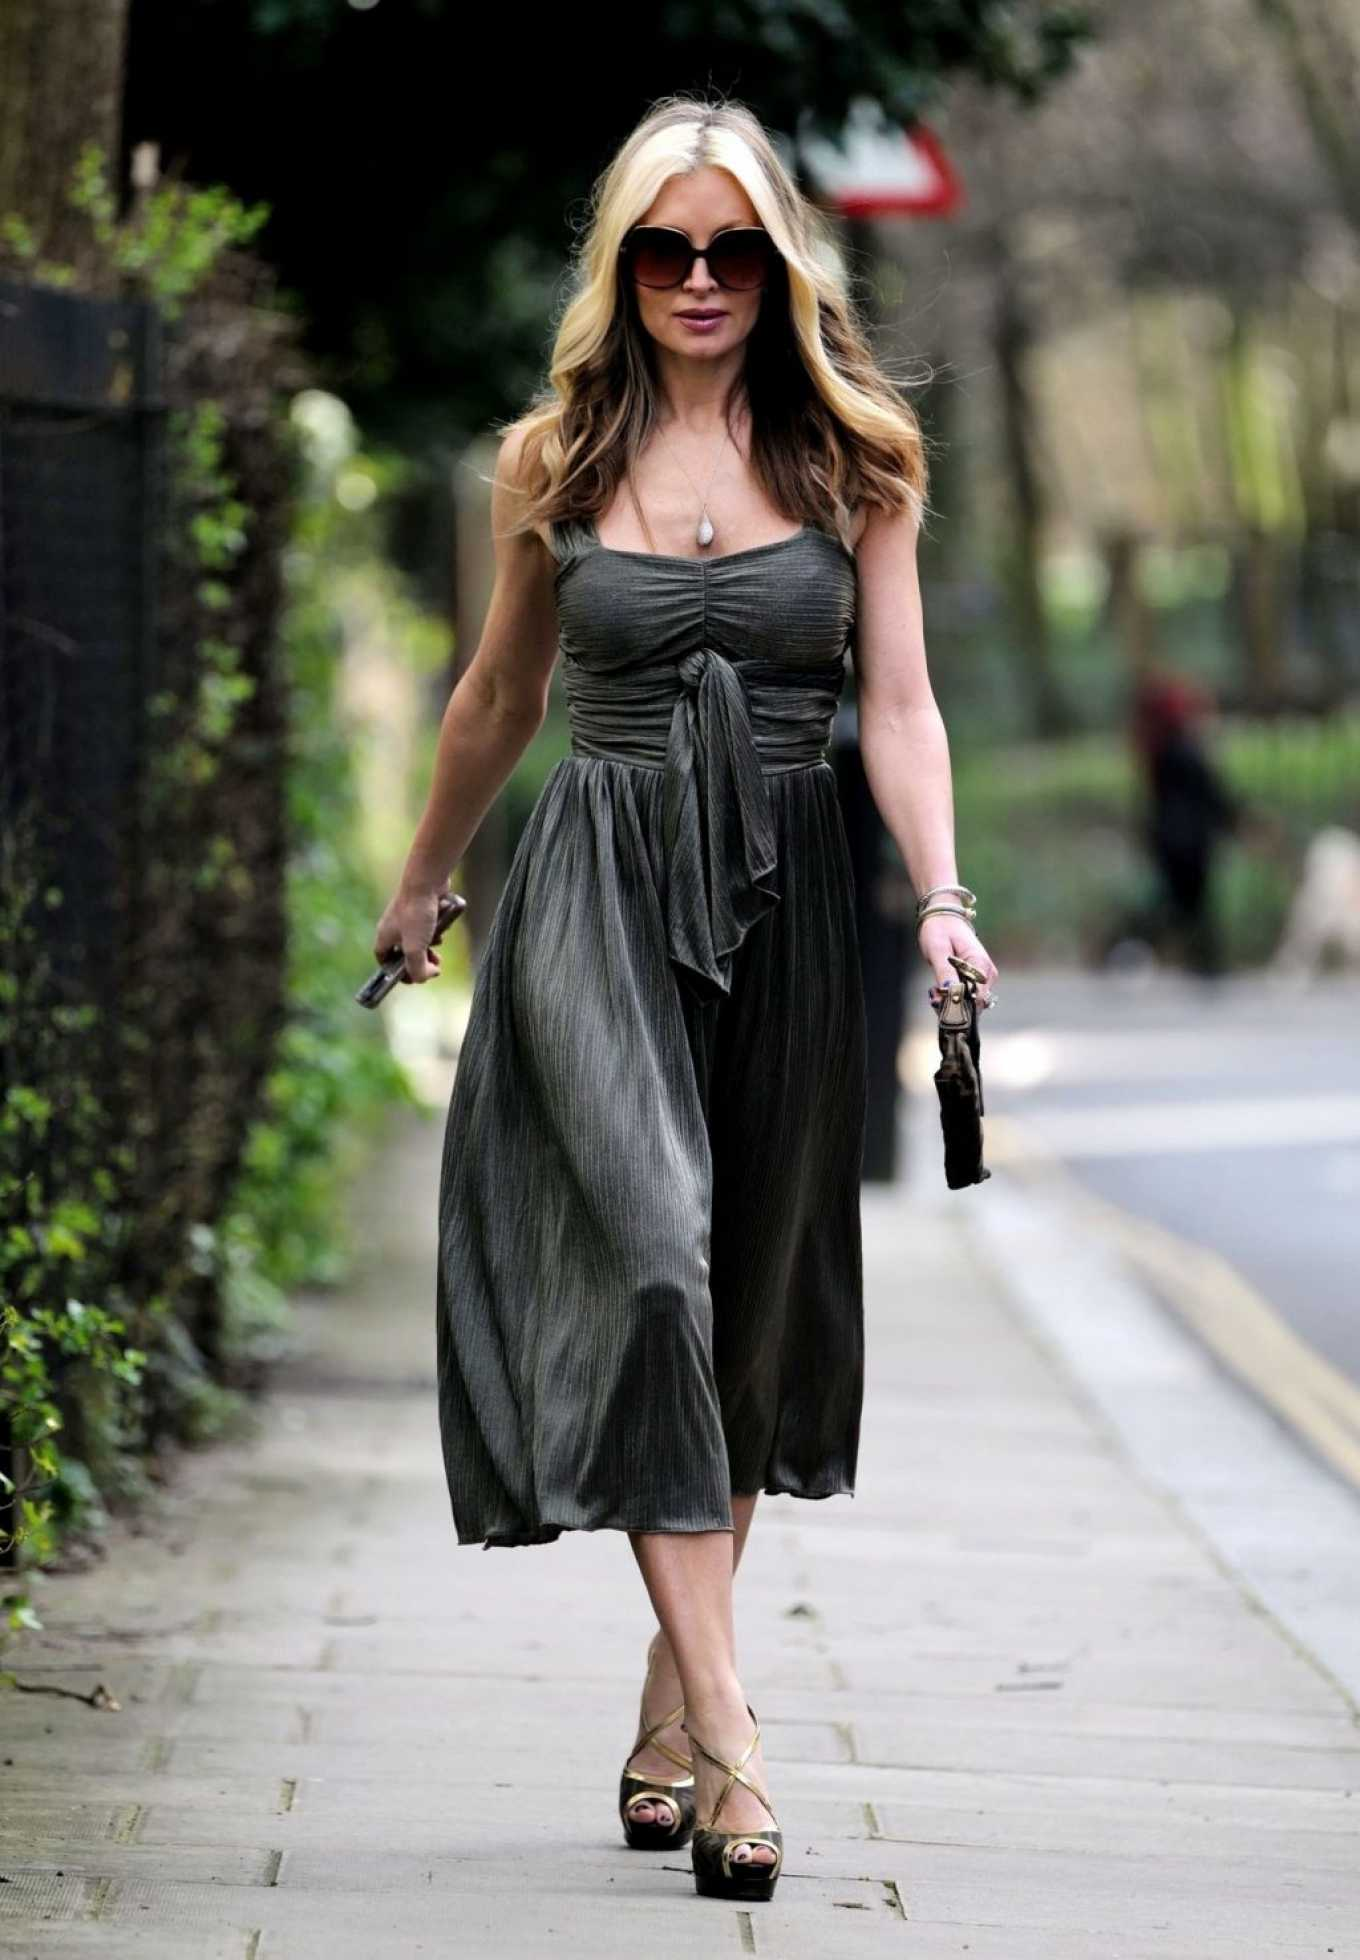 Caprice Bourret 2020 : Caprice Bourret – Out in London-22